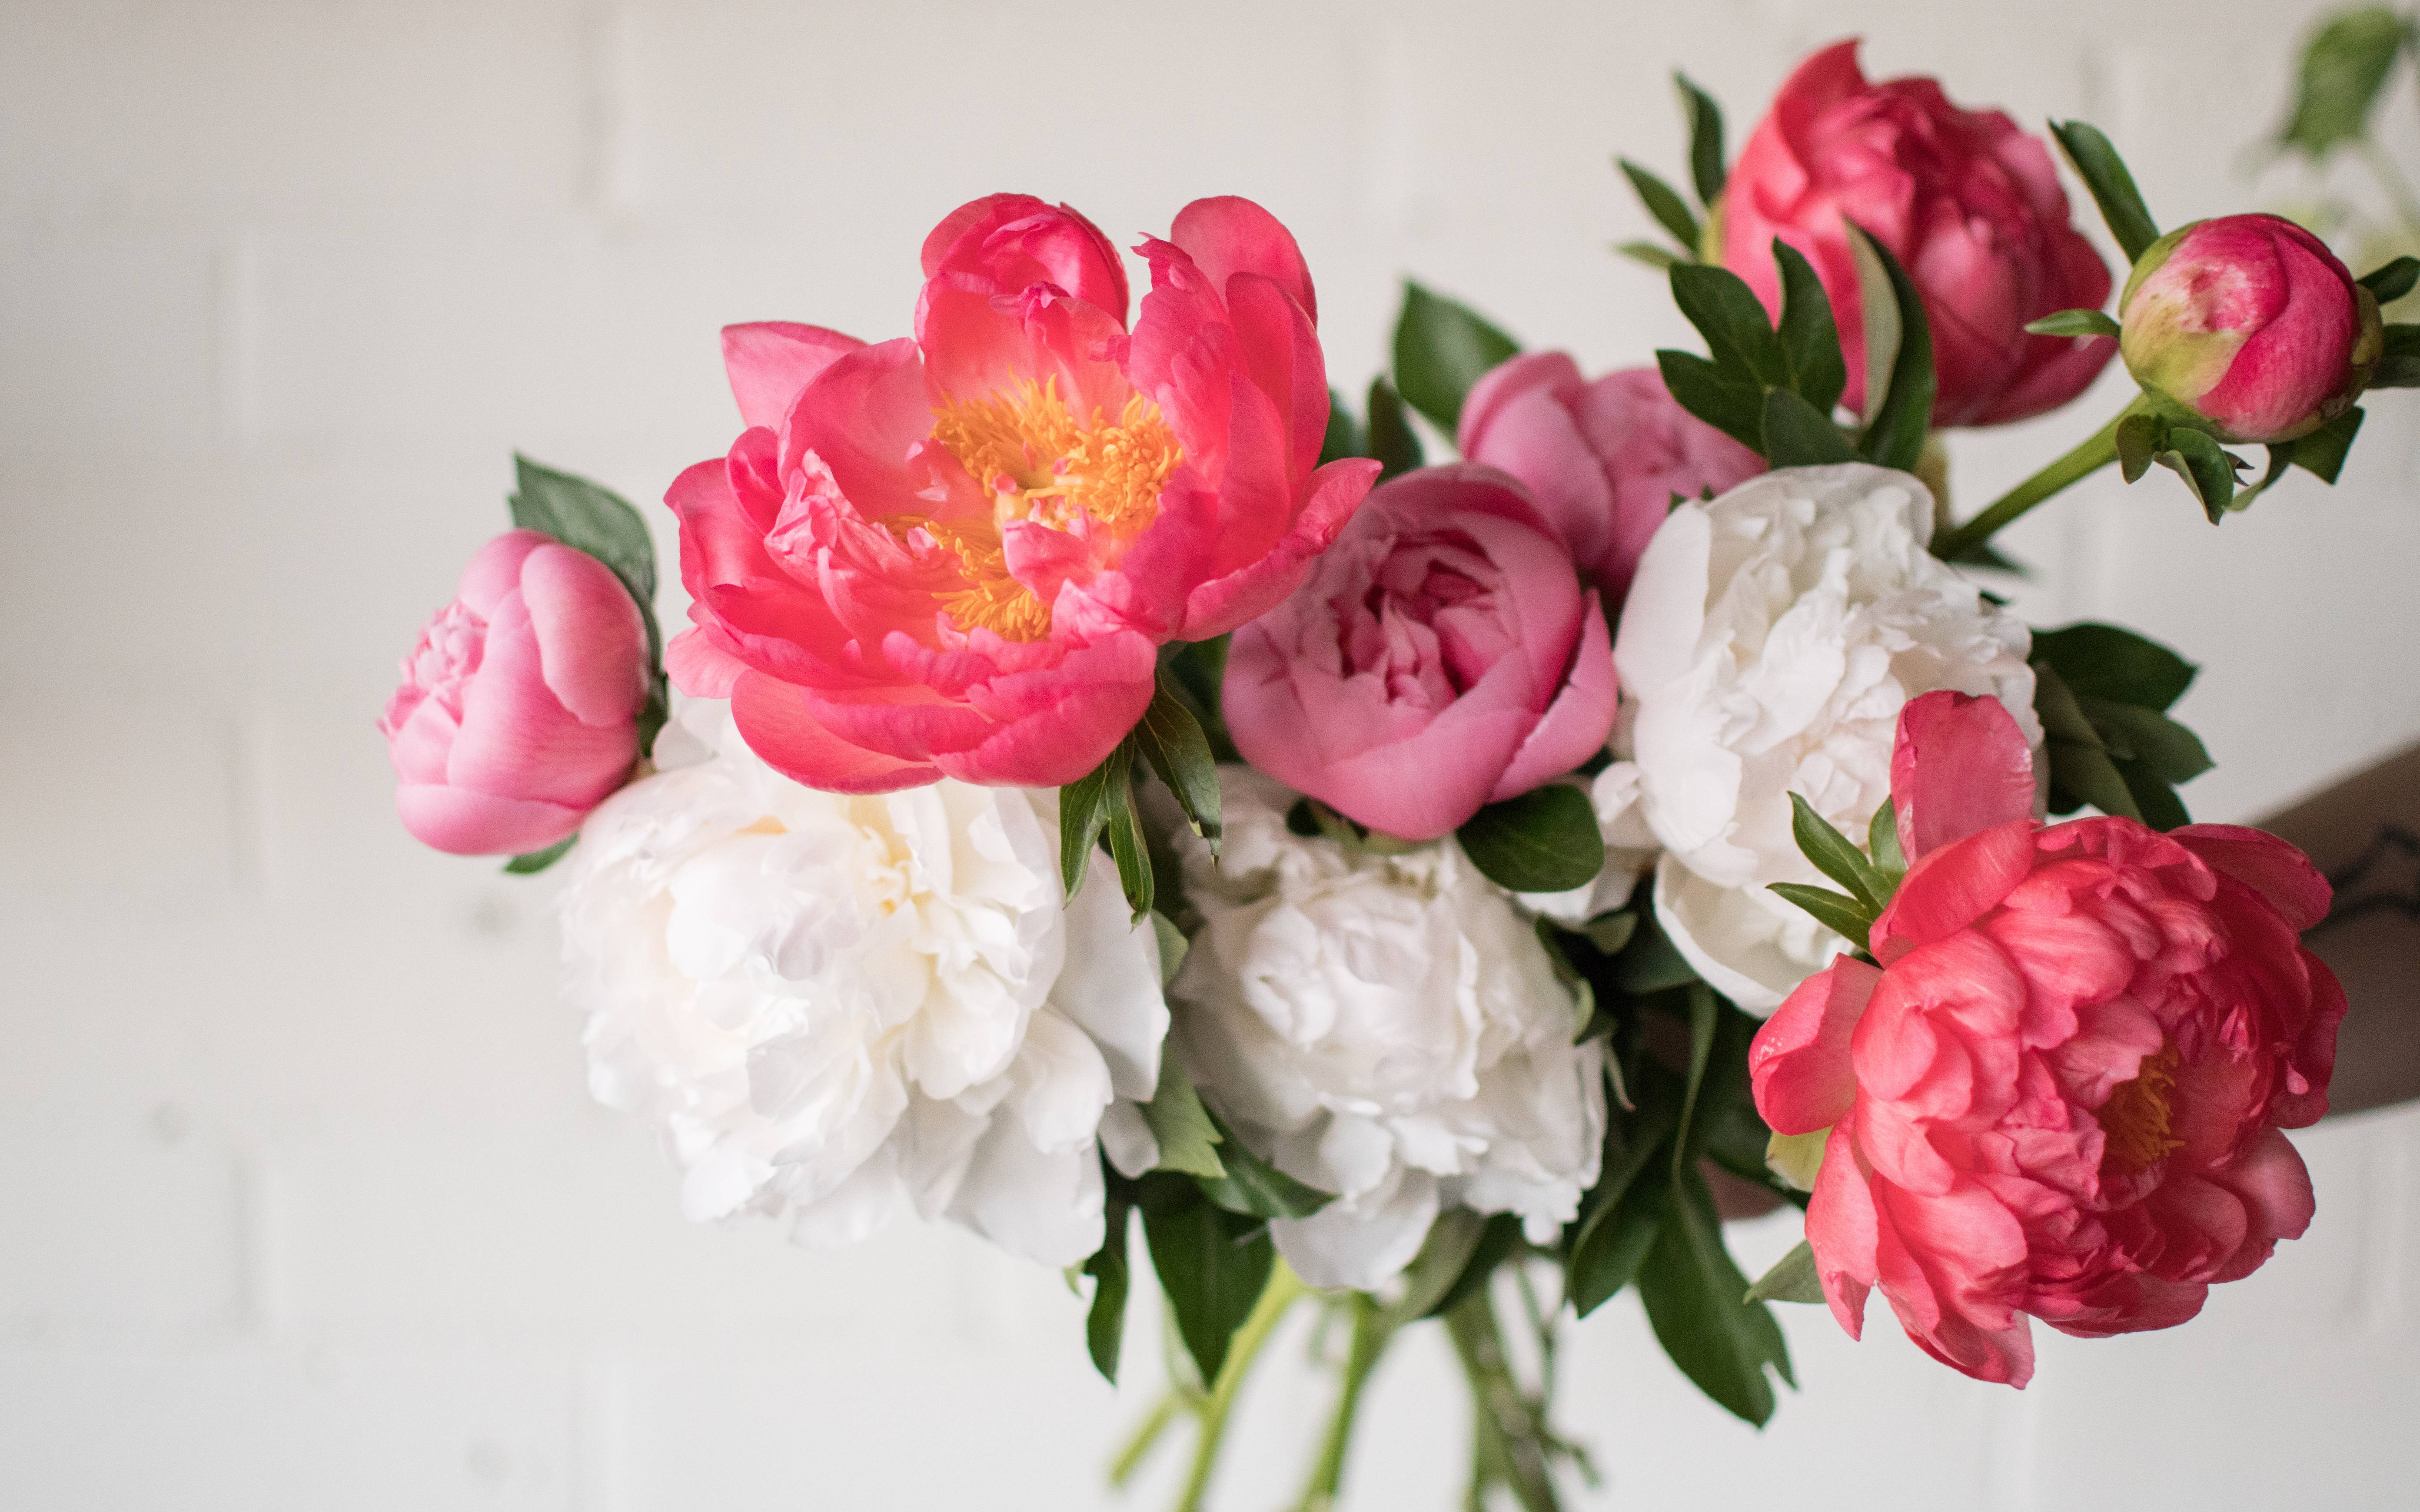 Peonies for you, Peonies for me!